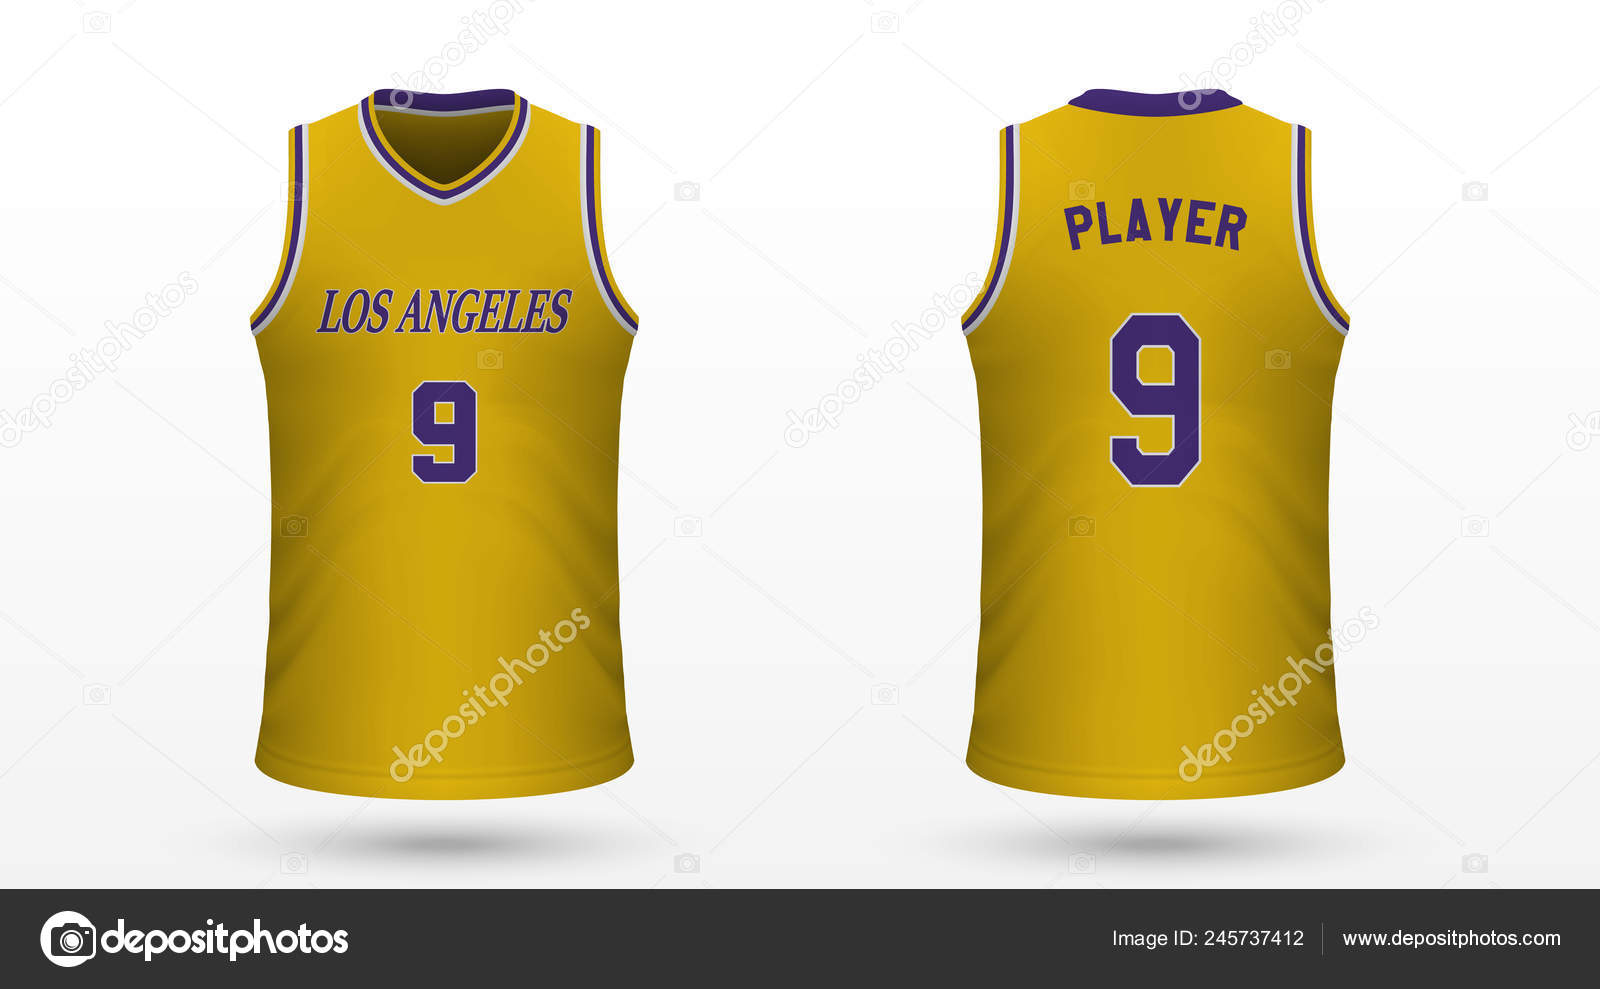 89dbce239a97a0 Realistic Sport Shirt Los Angeles Lakers Jersey Template Basketball Kit —  Stock Vector